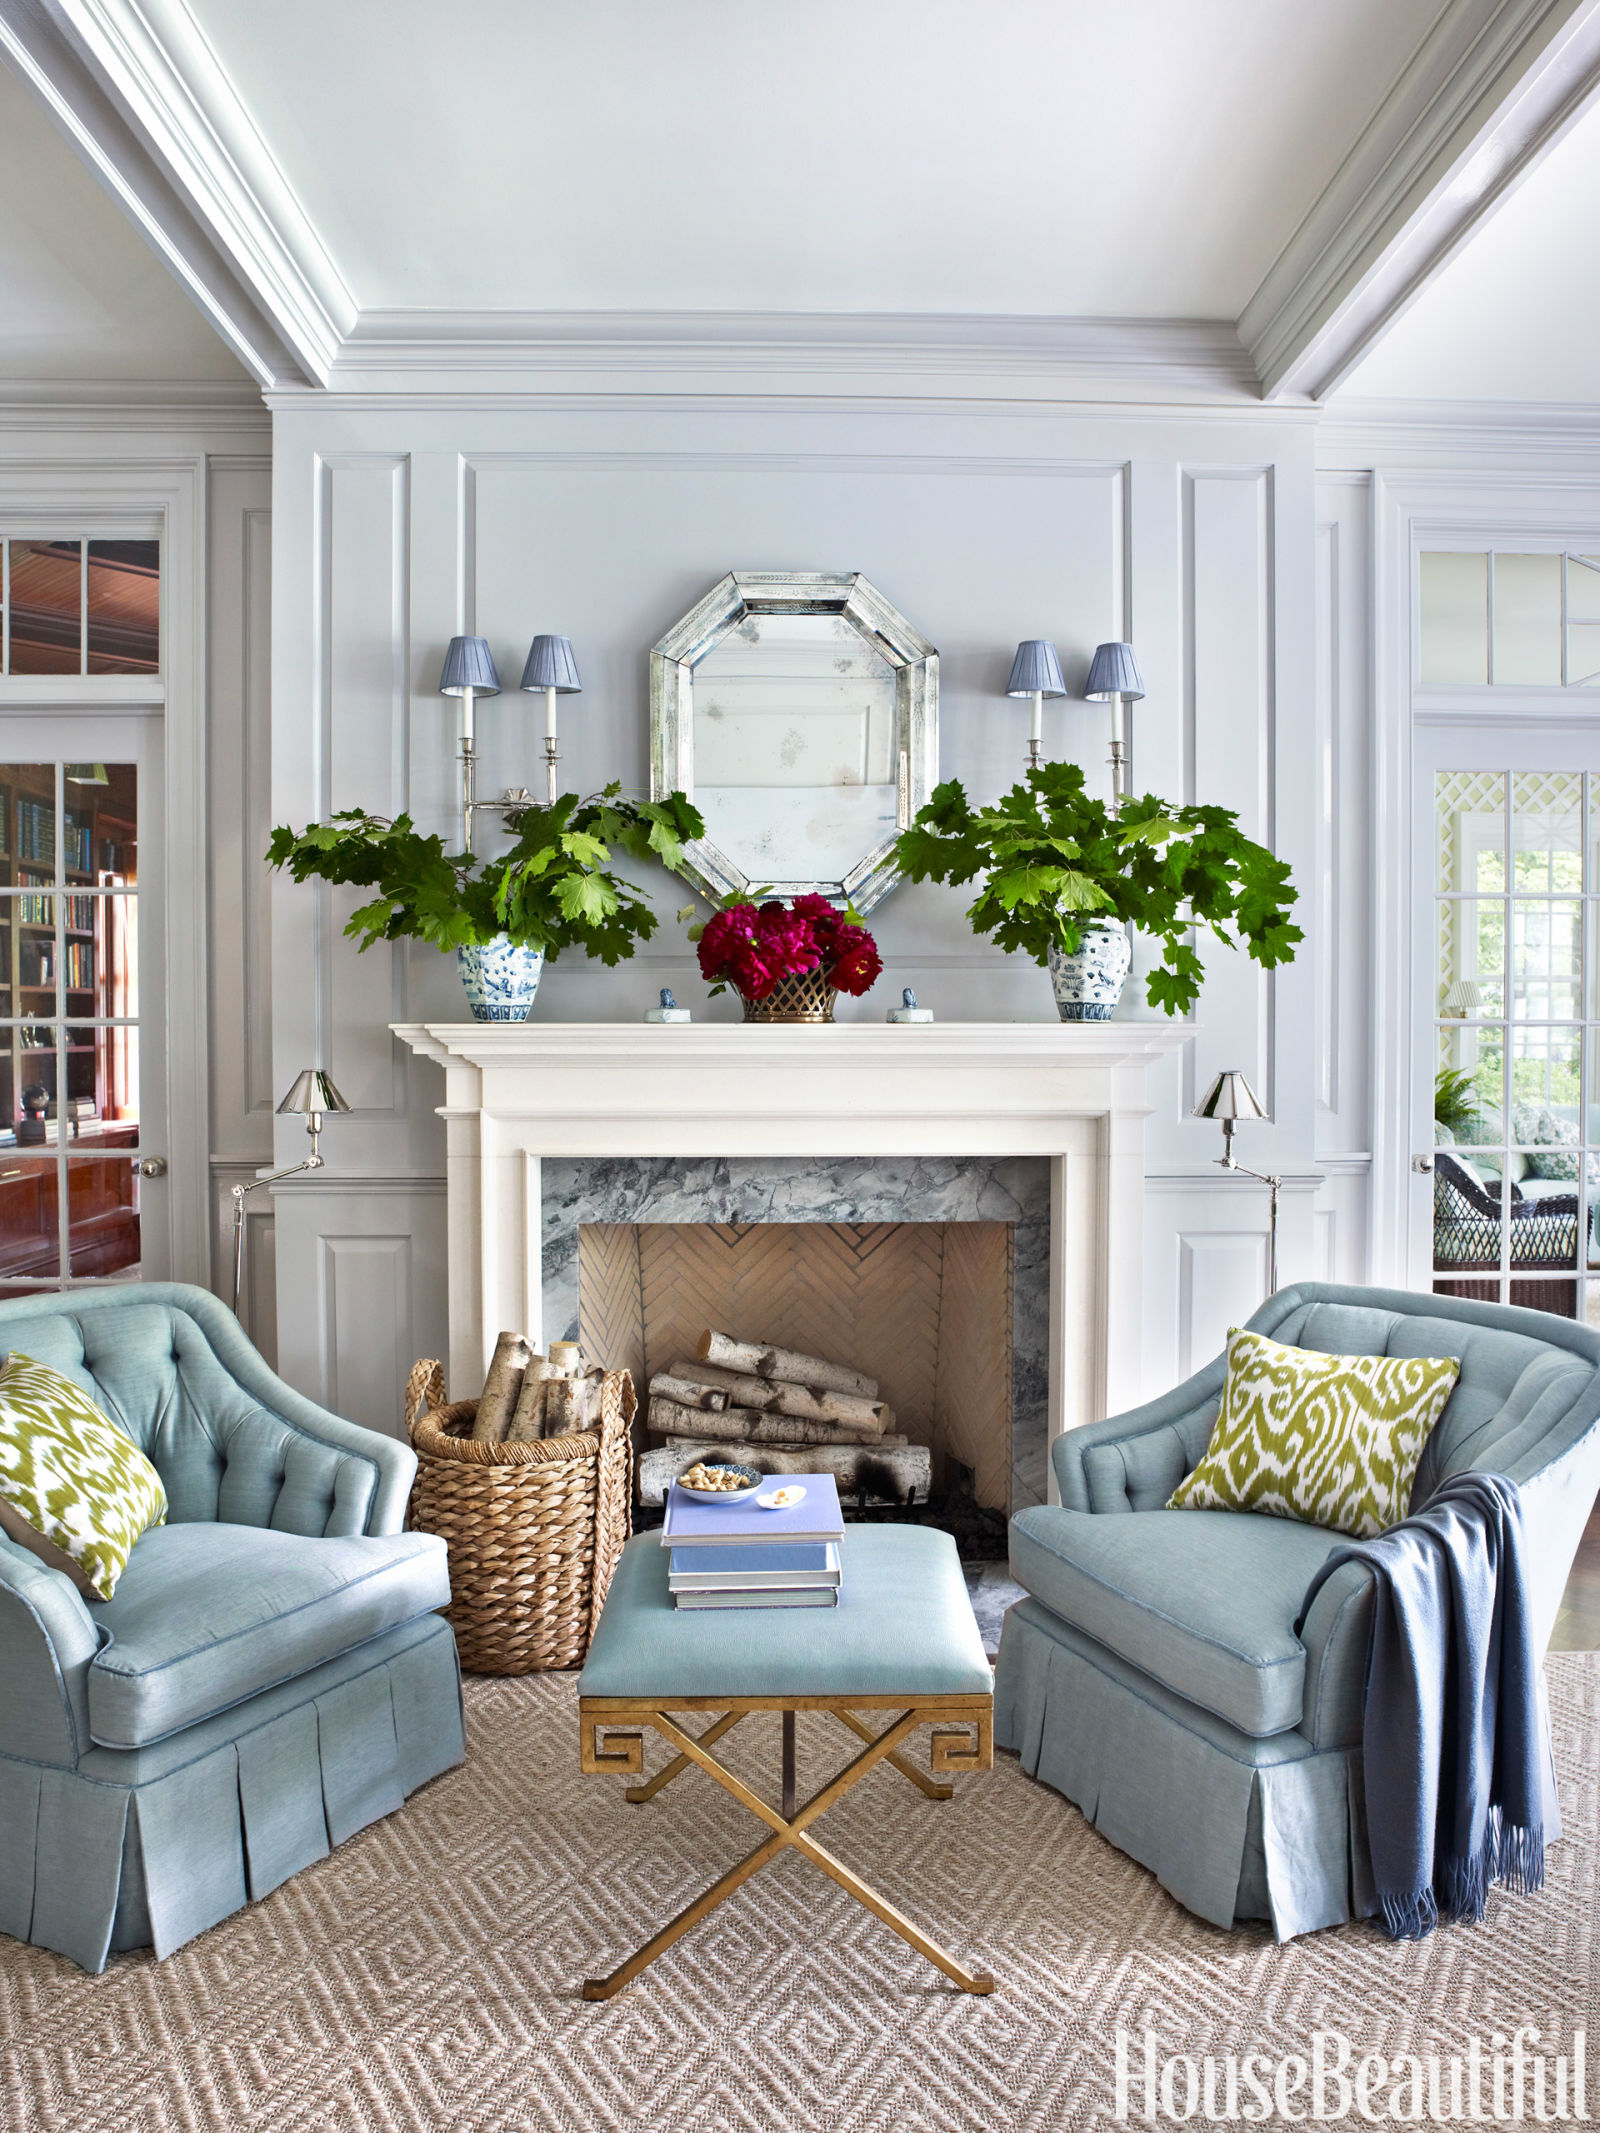 ashley whittaker greenwich house ashley whittaker interior design - House Beautiful Living Room Colors